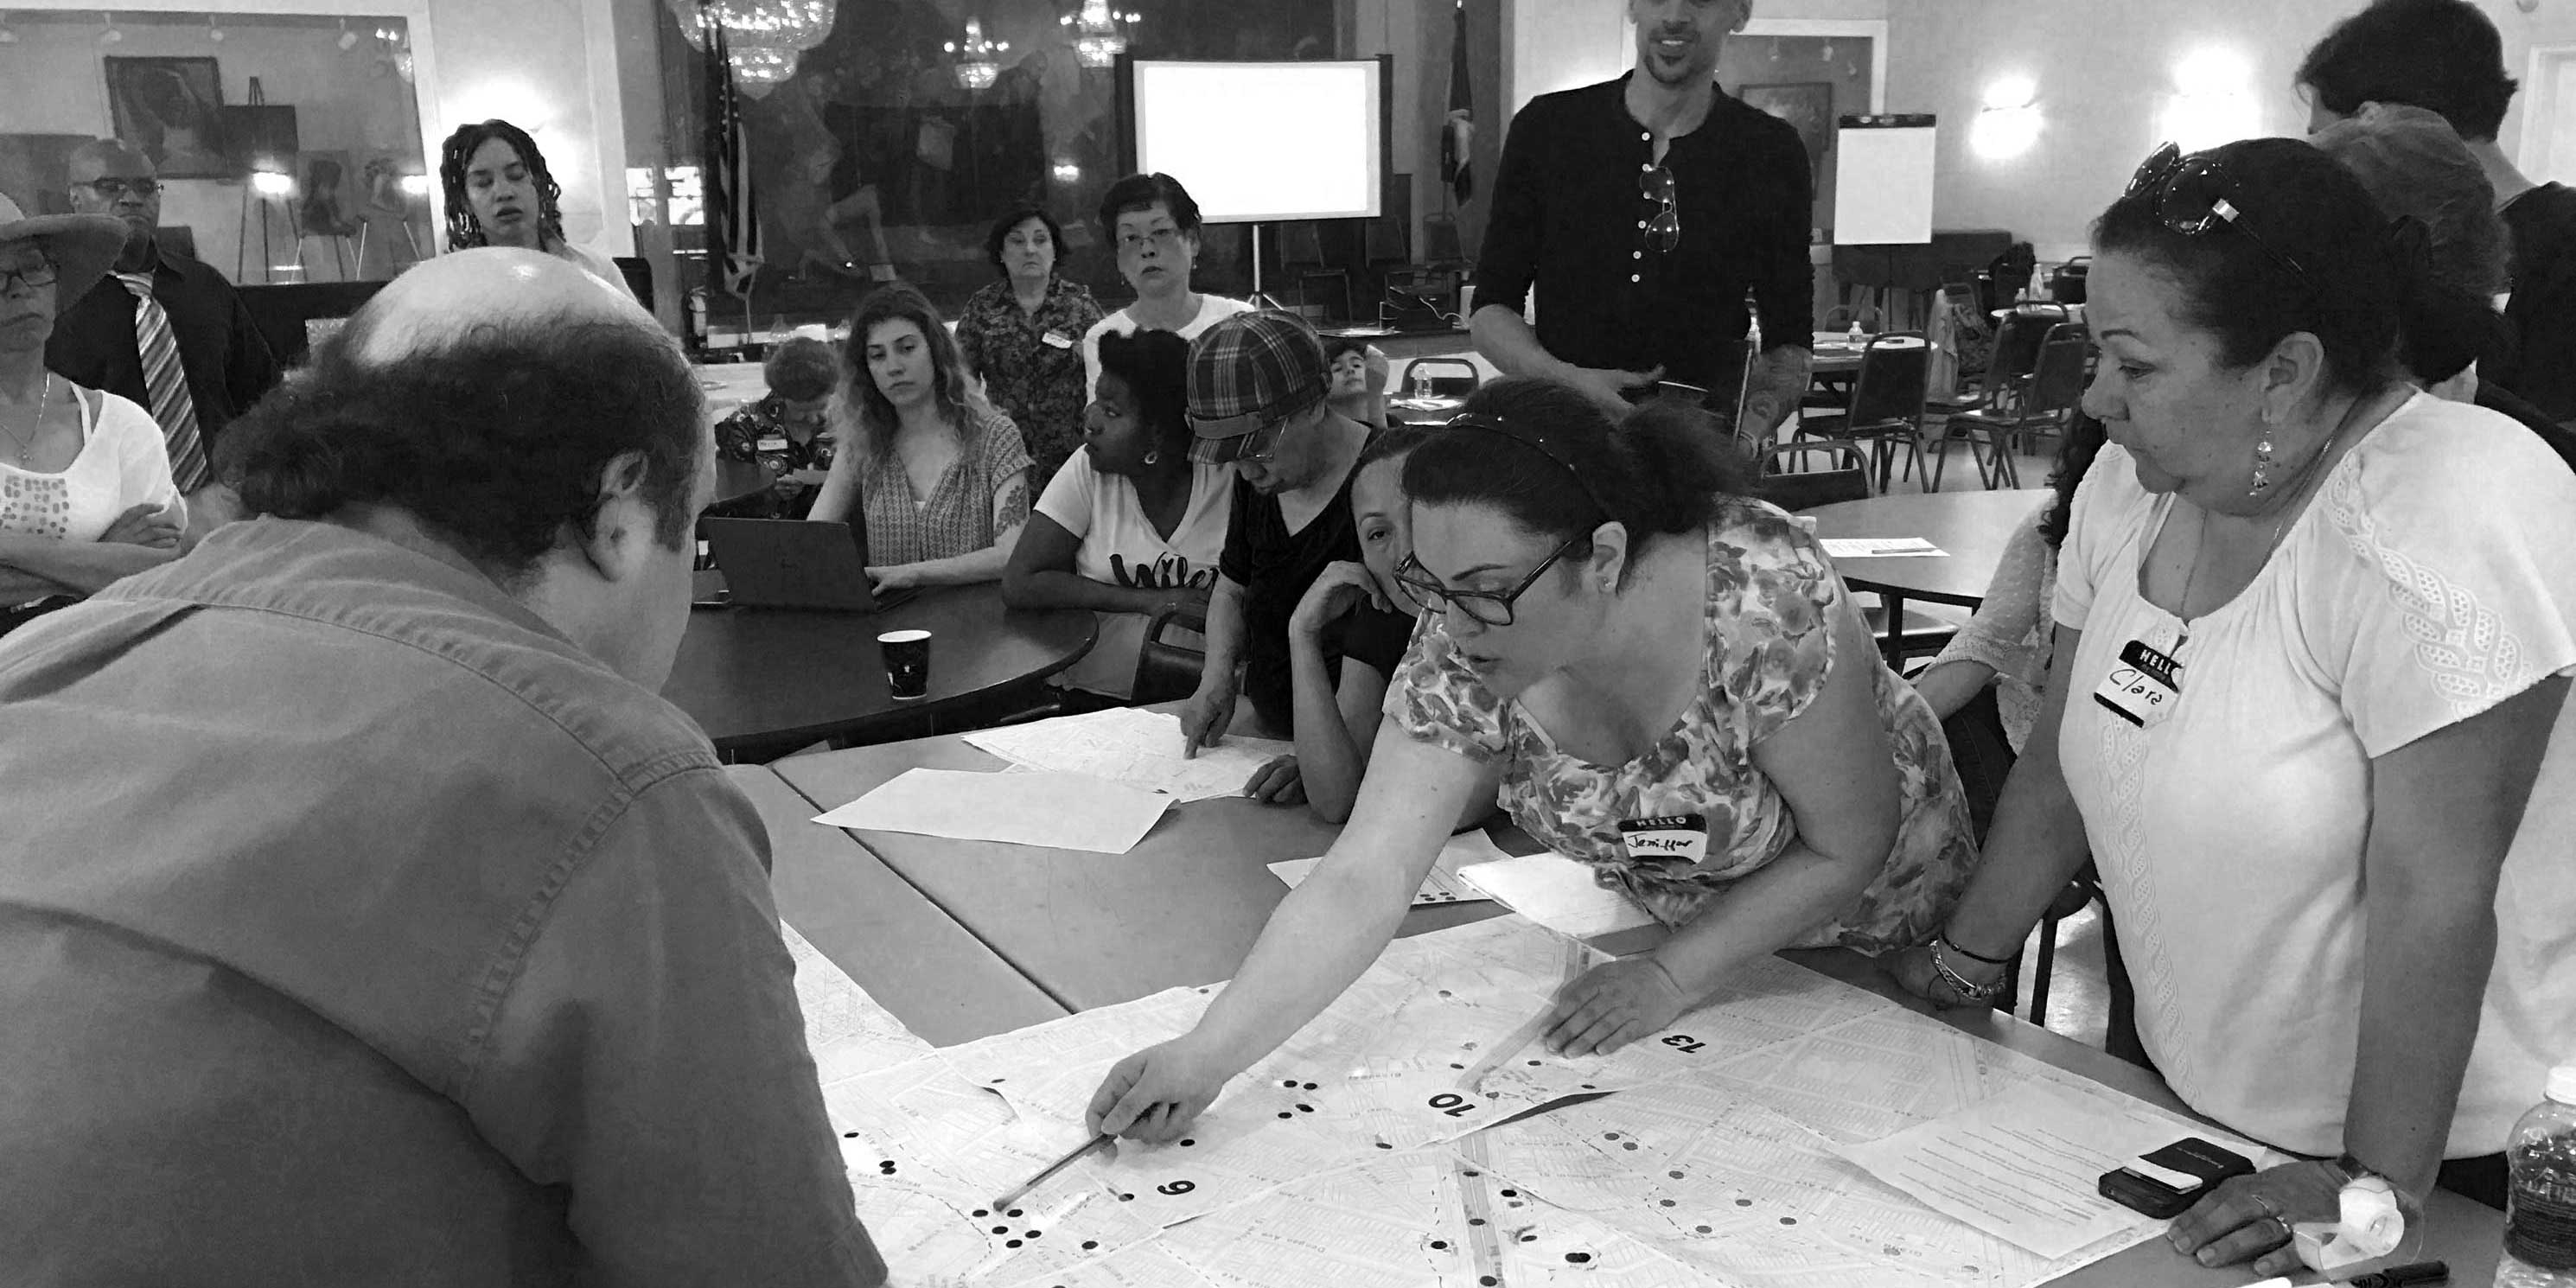 members at a Livable Neighborhoods workshop inspect a map